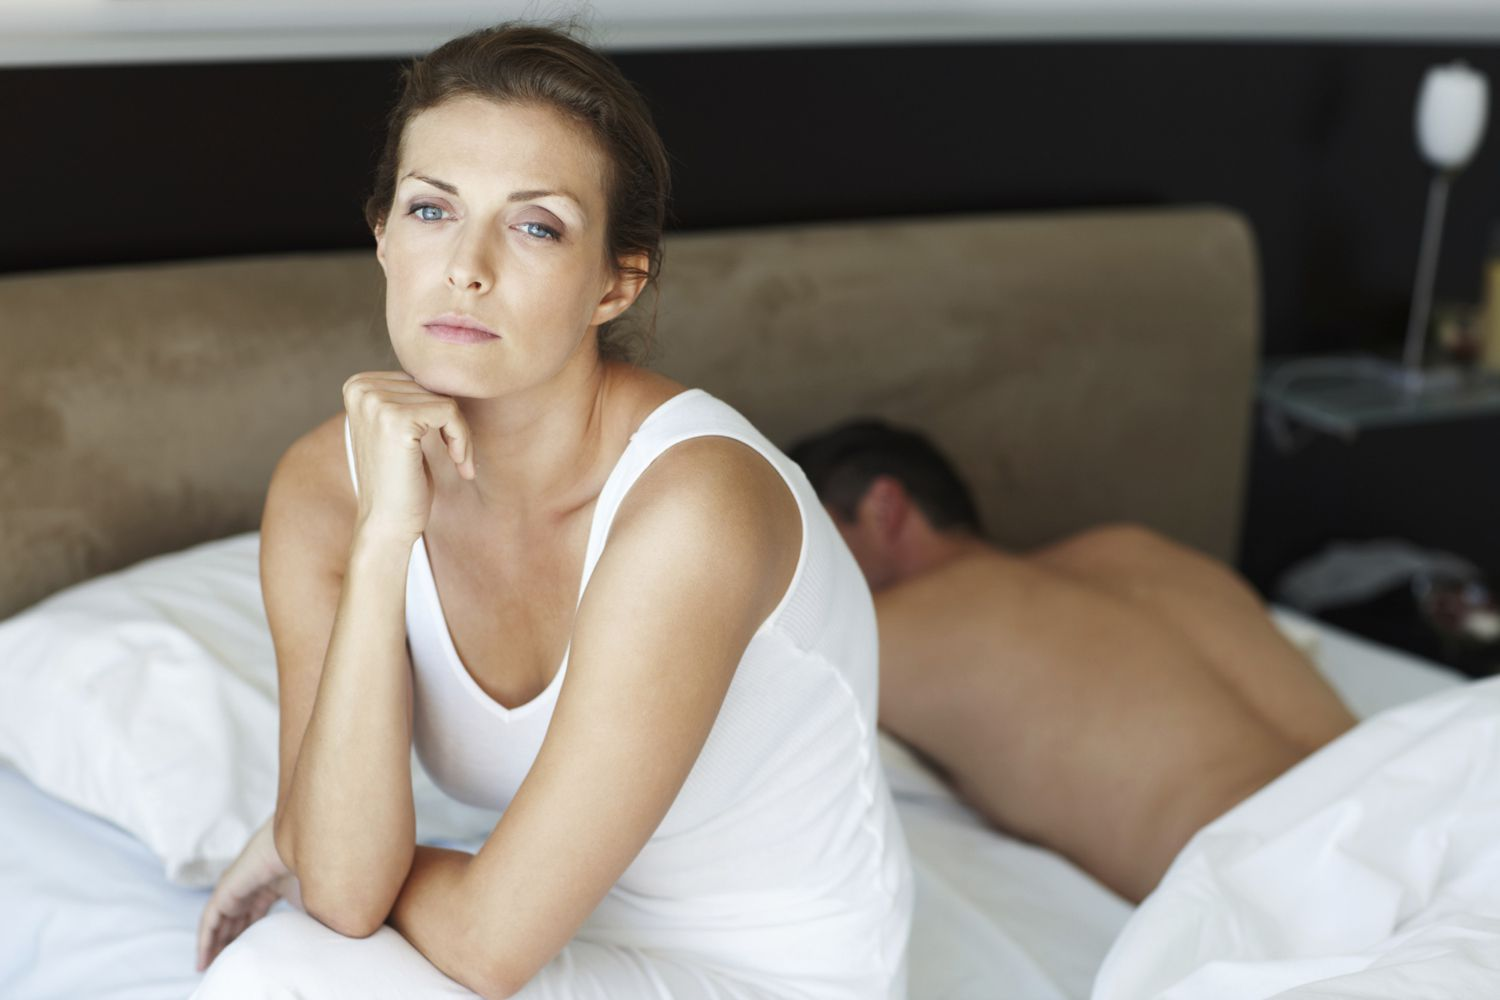 Genophobia Fear of Sexual Intercourse